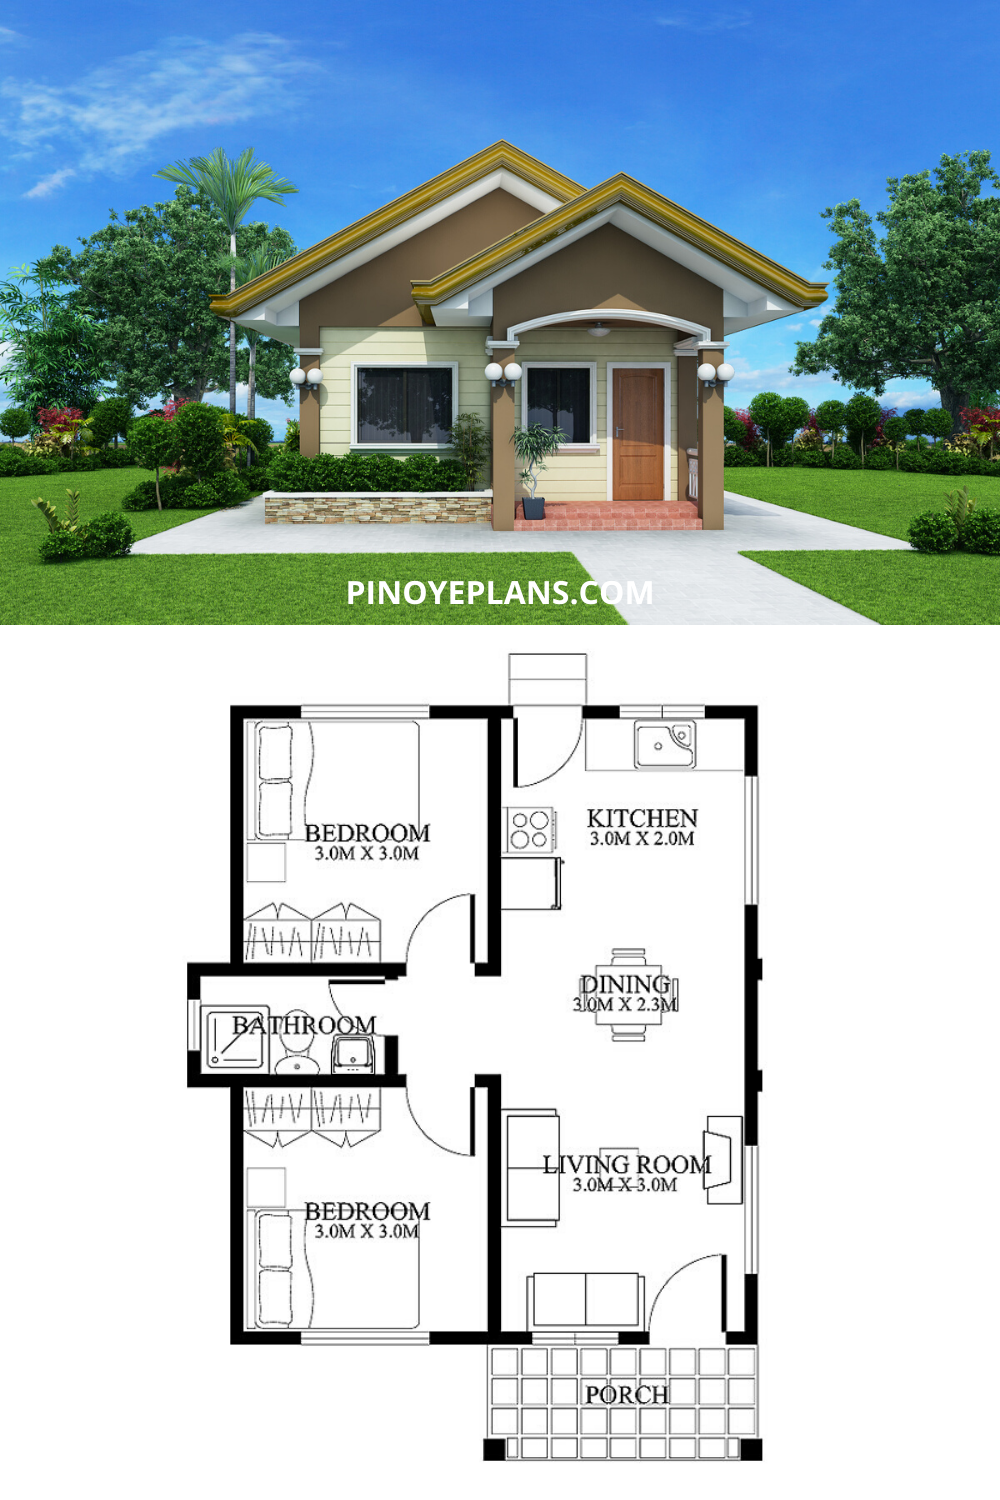 Small House Designs Shd 2012001 Pinoy Eplans Small House Design Affordable House Plans Small House Design Floor Plan